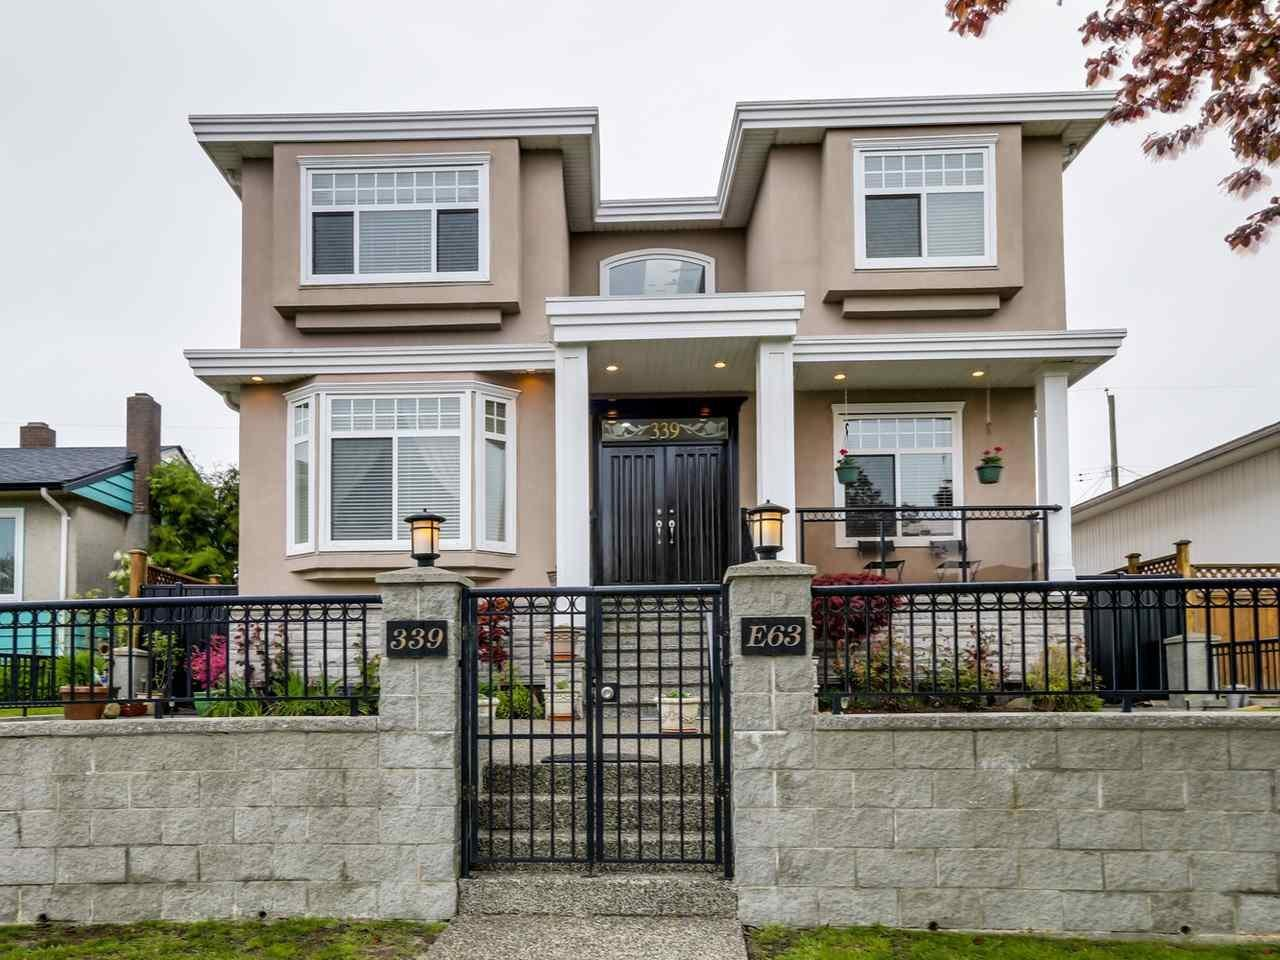 R2074840 - 339 E 63RD AVENUE, South Vancouver, Vancouver, BC - House/Single Family